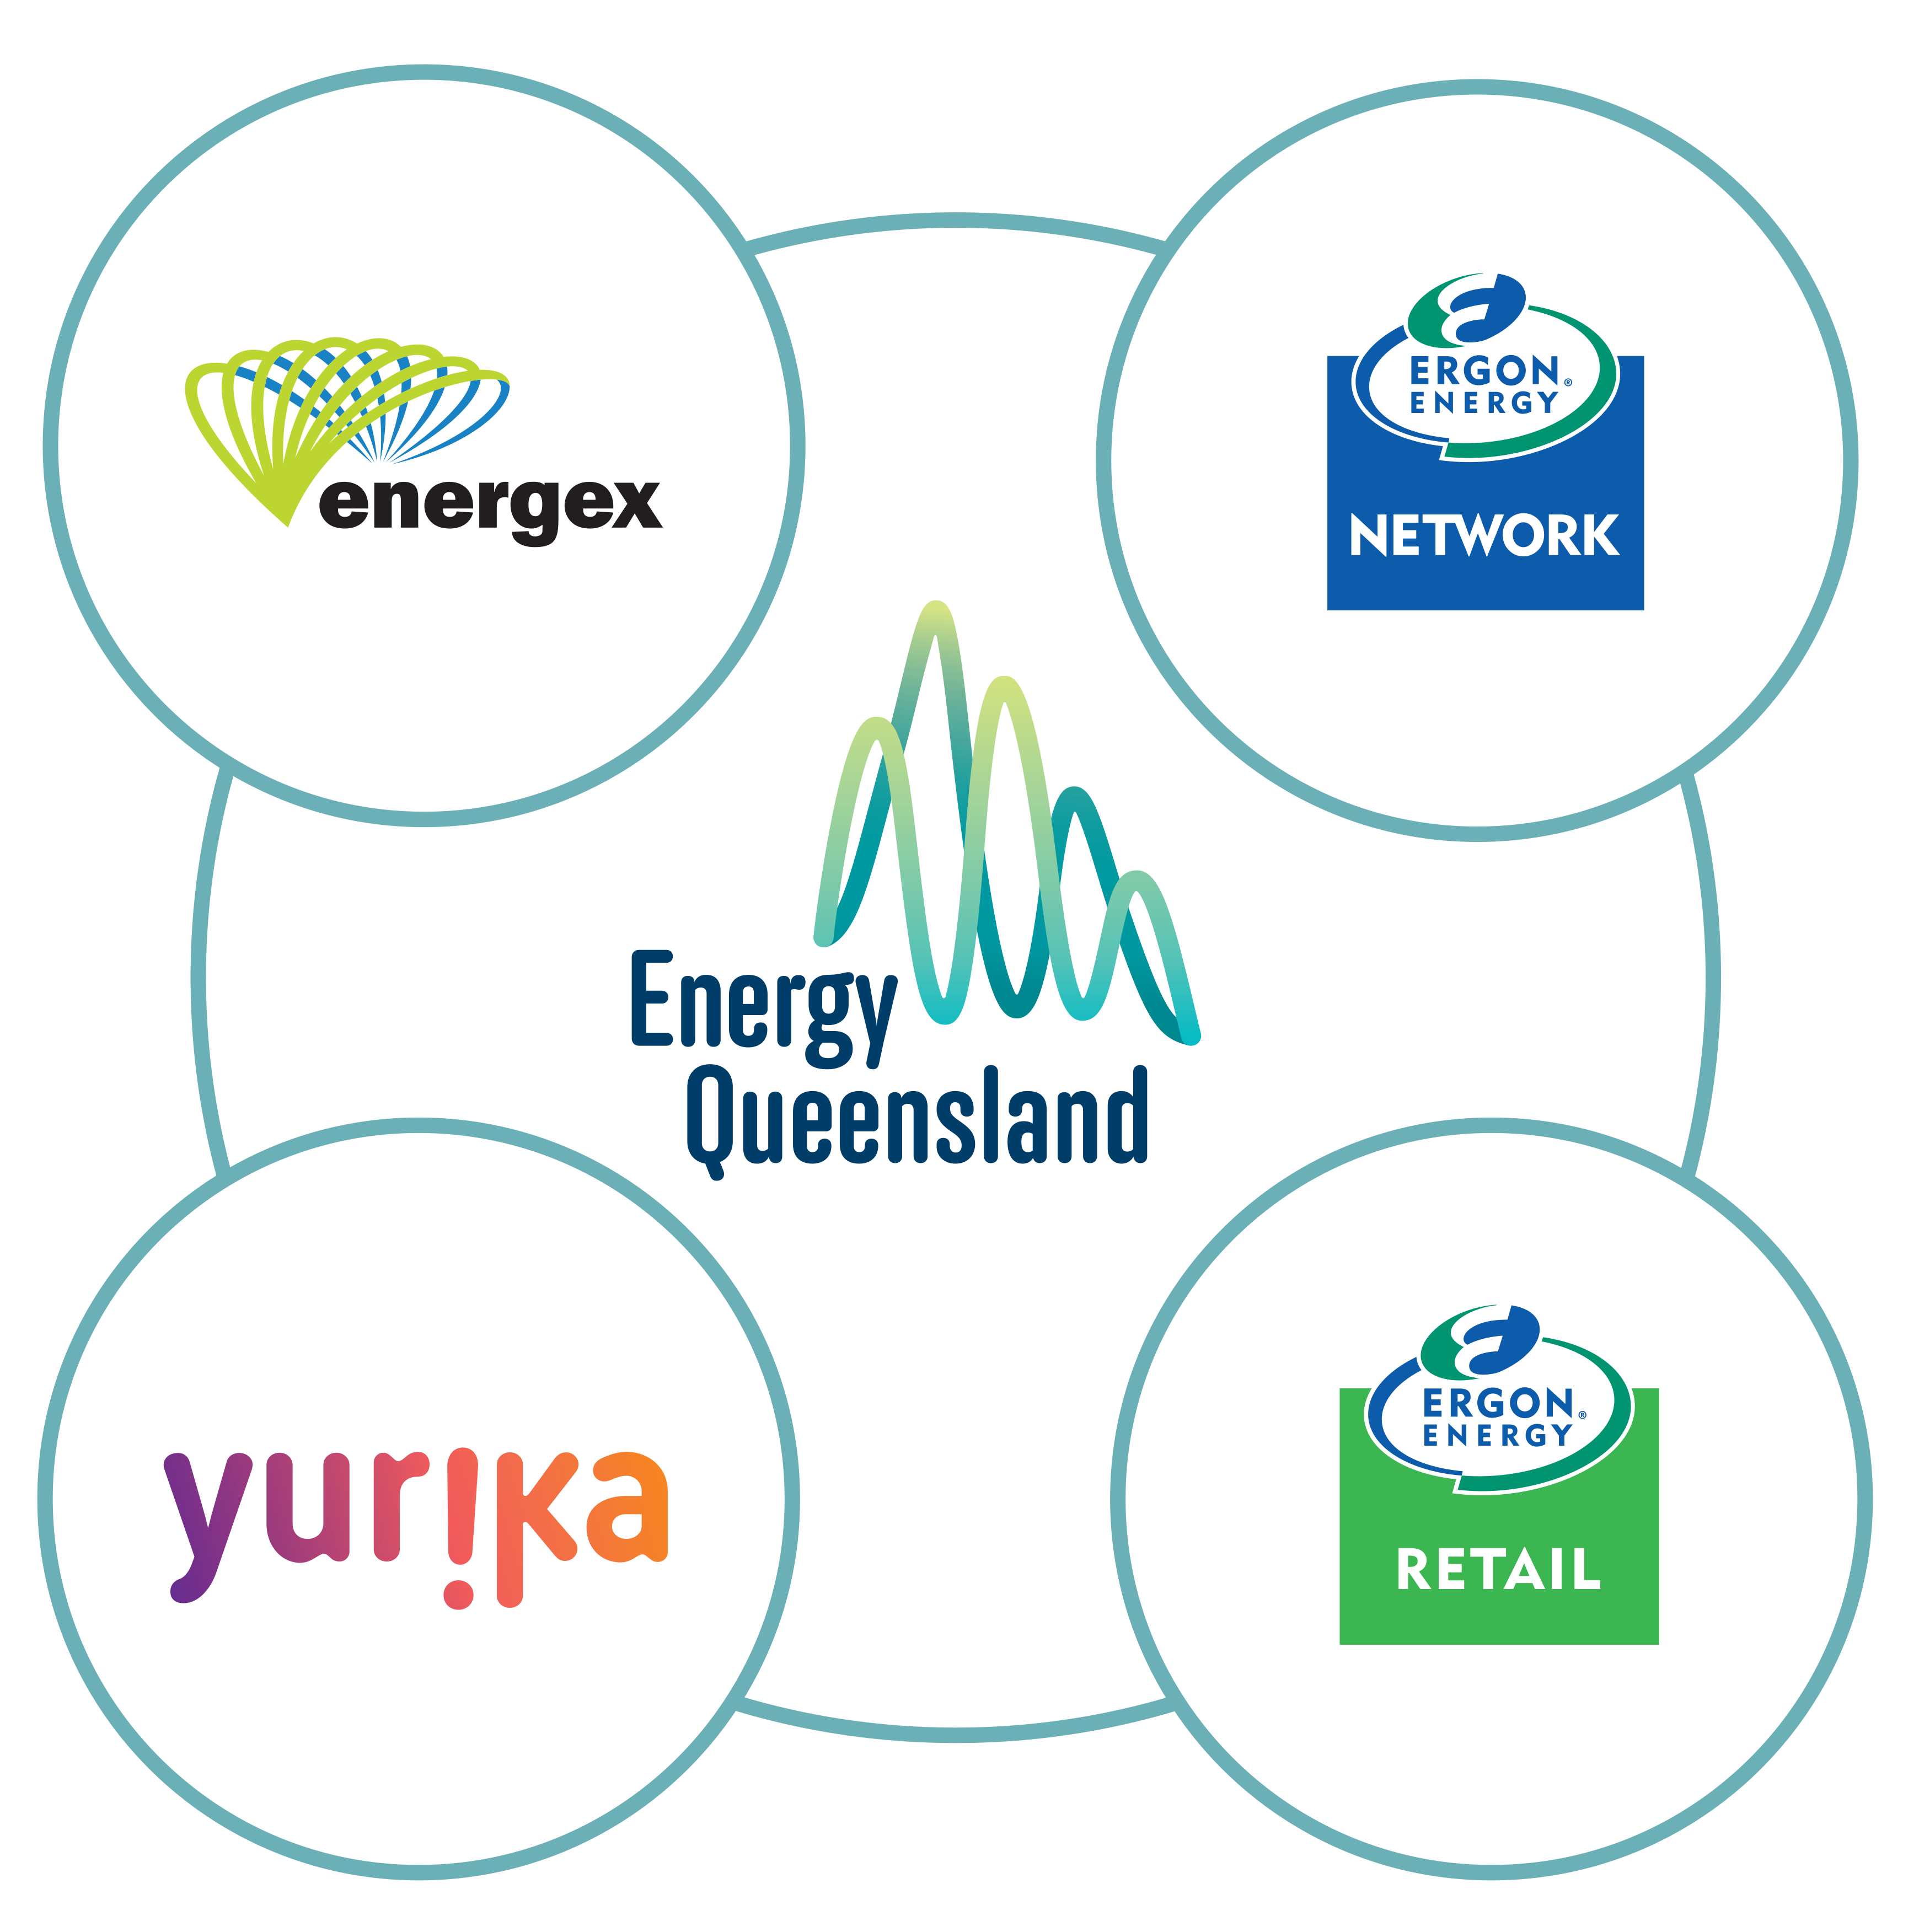 An illustration of the brands that make up Energy Queensland